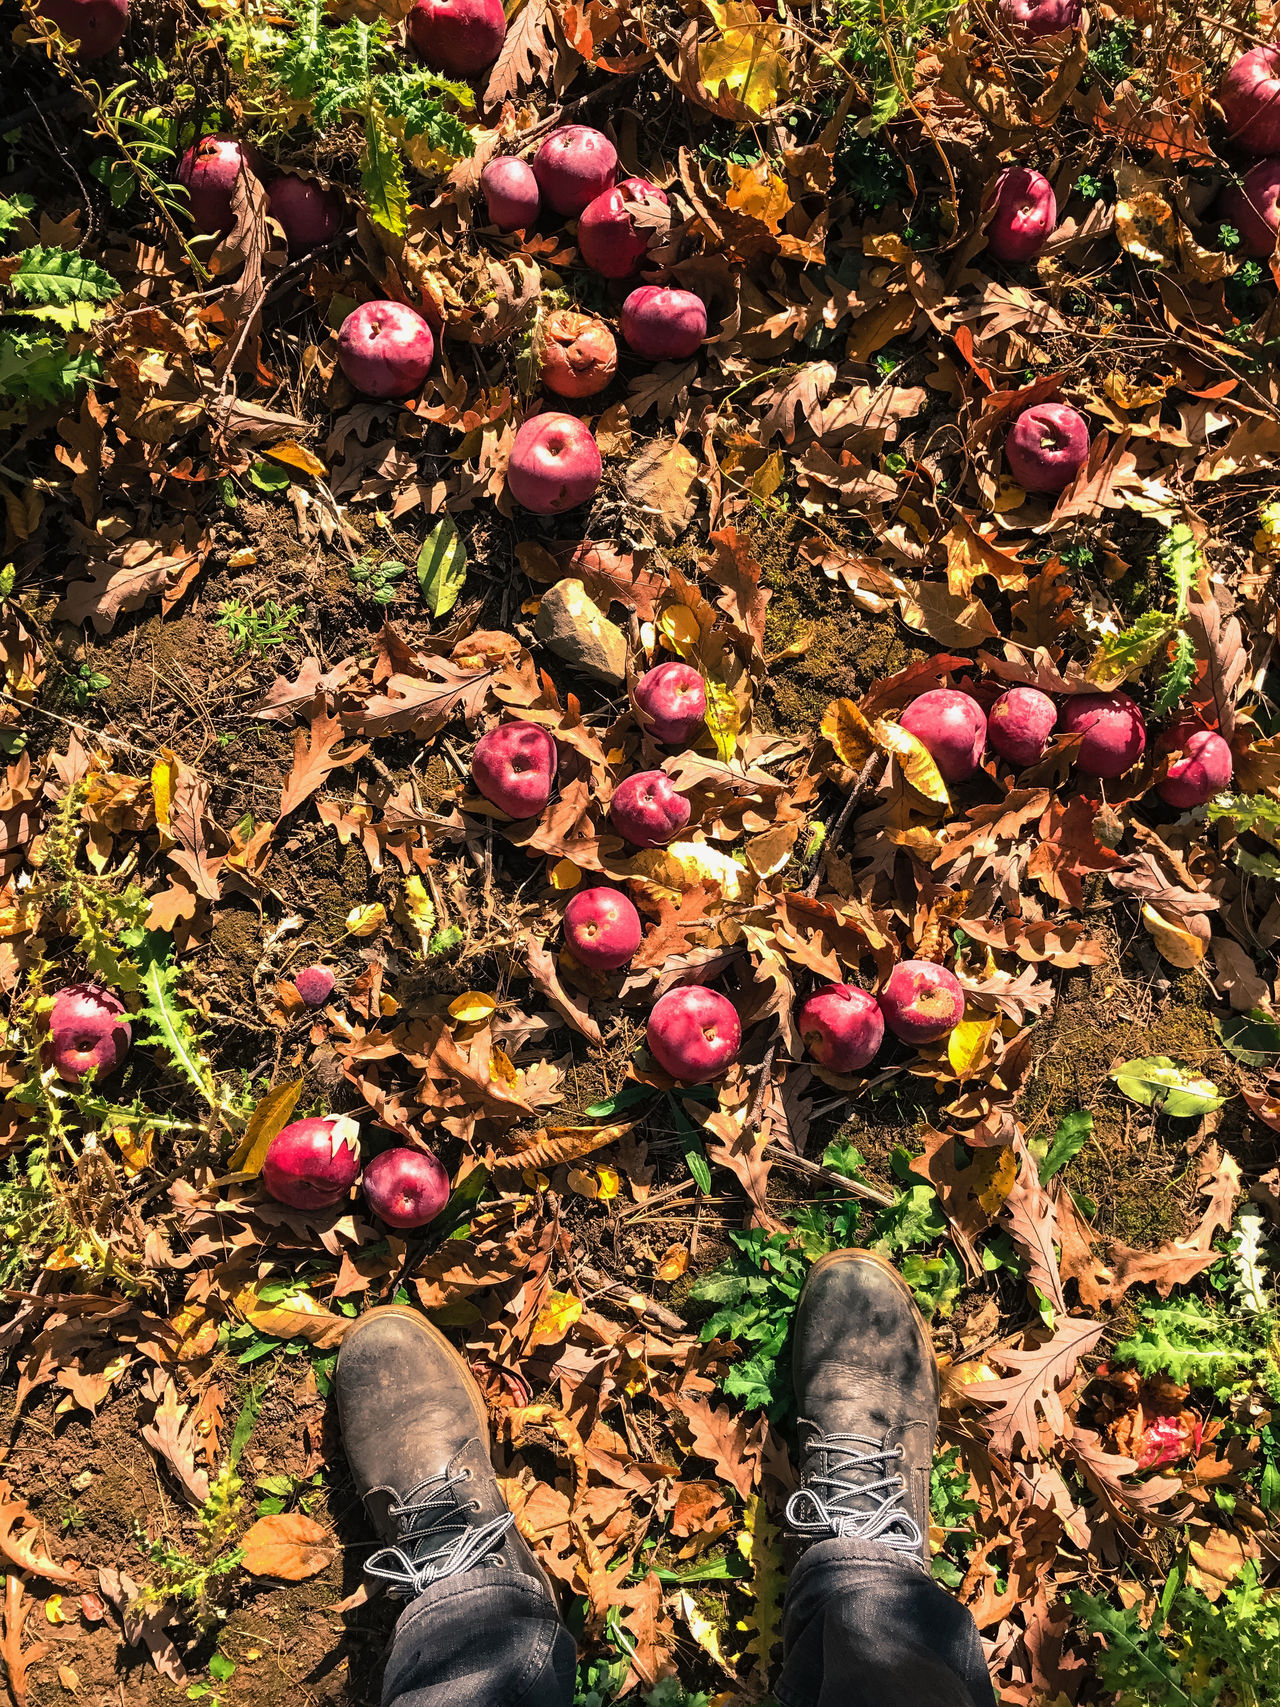 Apple picking in the Catskills, New York, USA. Photo by Tom Bland. Agriculture Apple Picking Apples Autumn Autumnal Boot Fall Feet Fruit IPhone IPhoneography Looking Down Male Man New York Orchard Orchards Outdoors Rural Seasonal Seasonal Fruit Selfie Standing